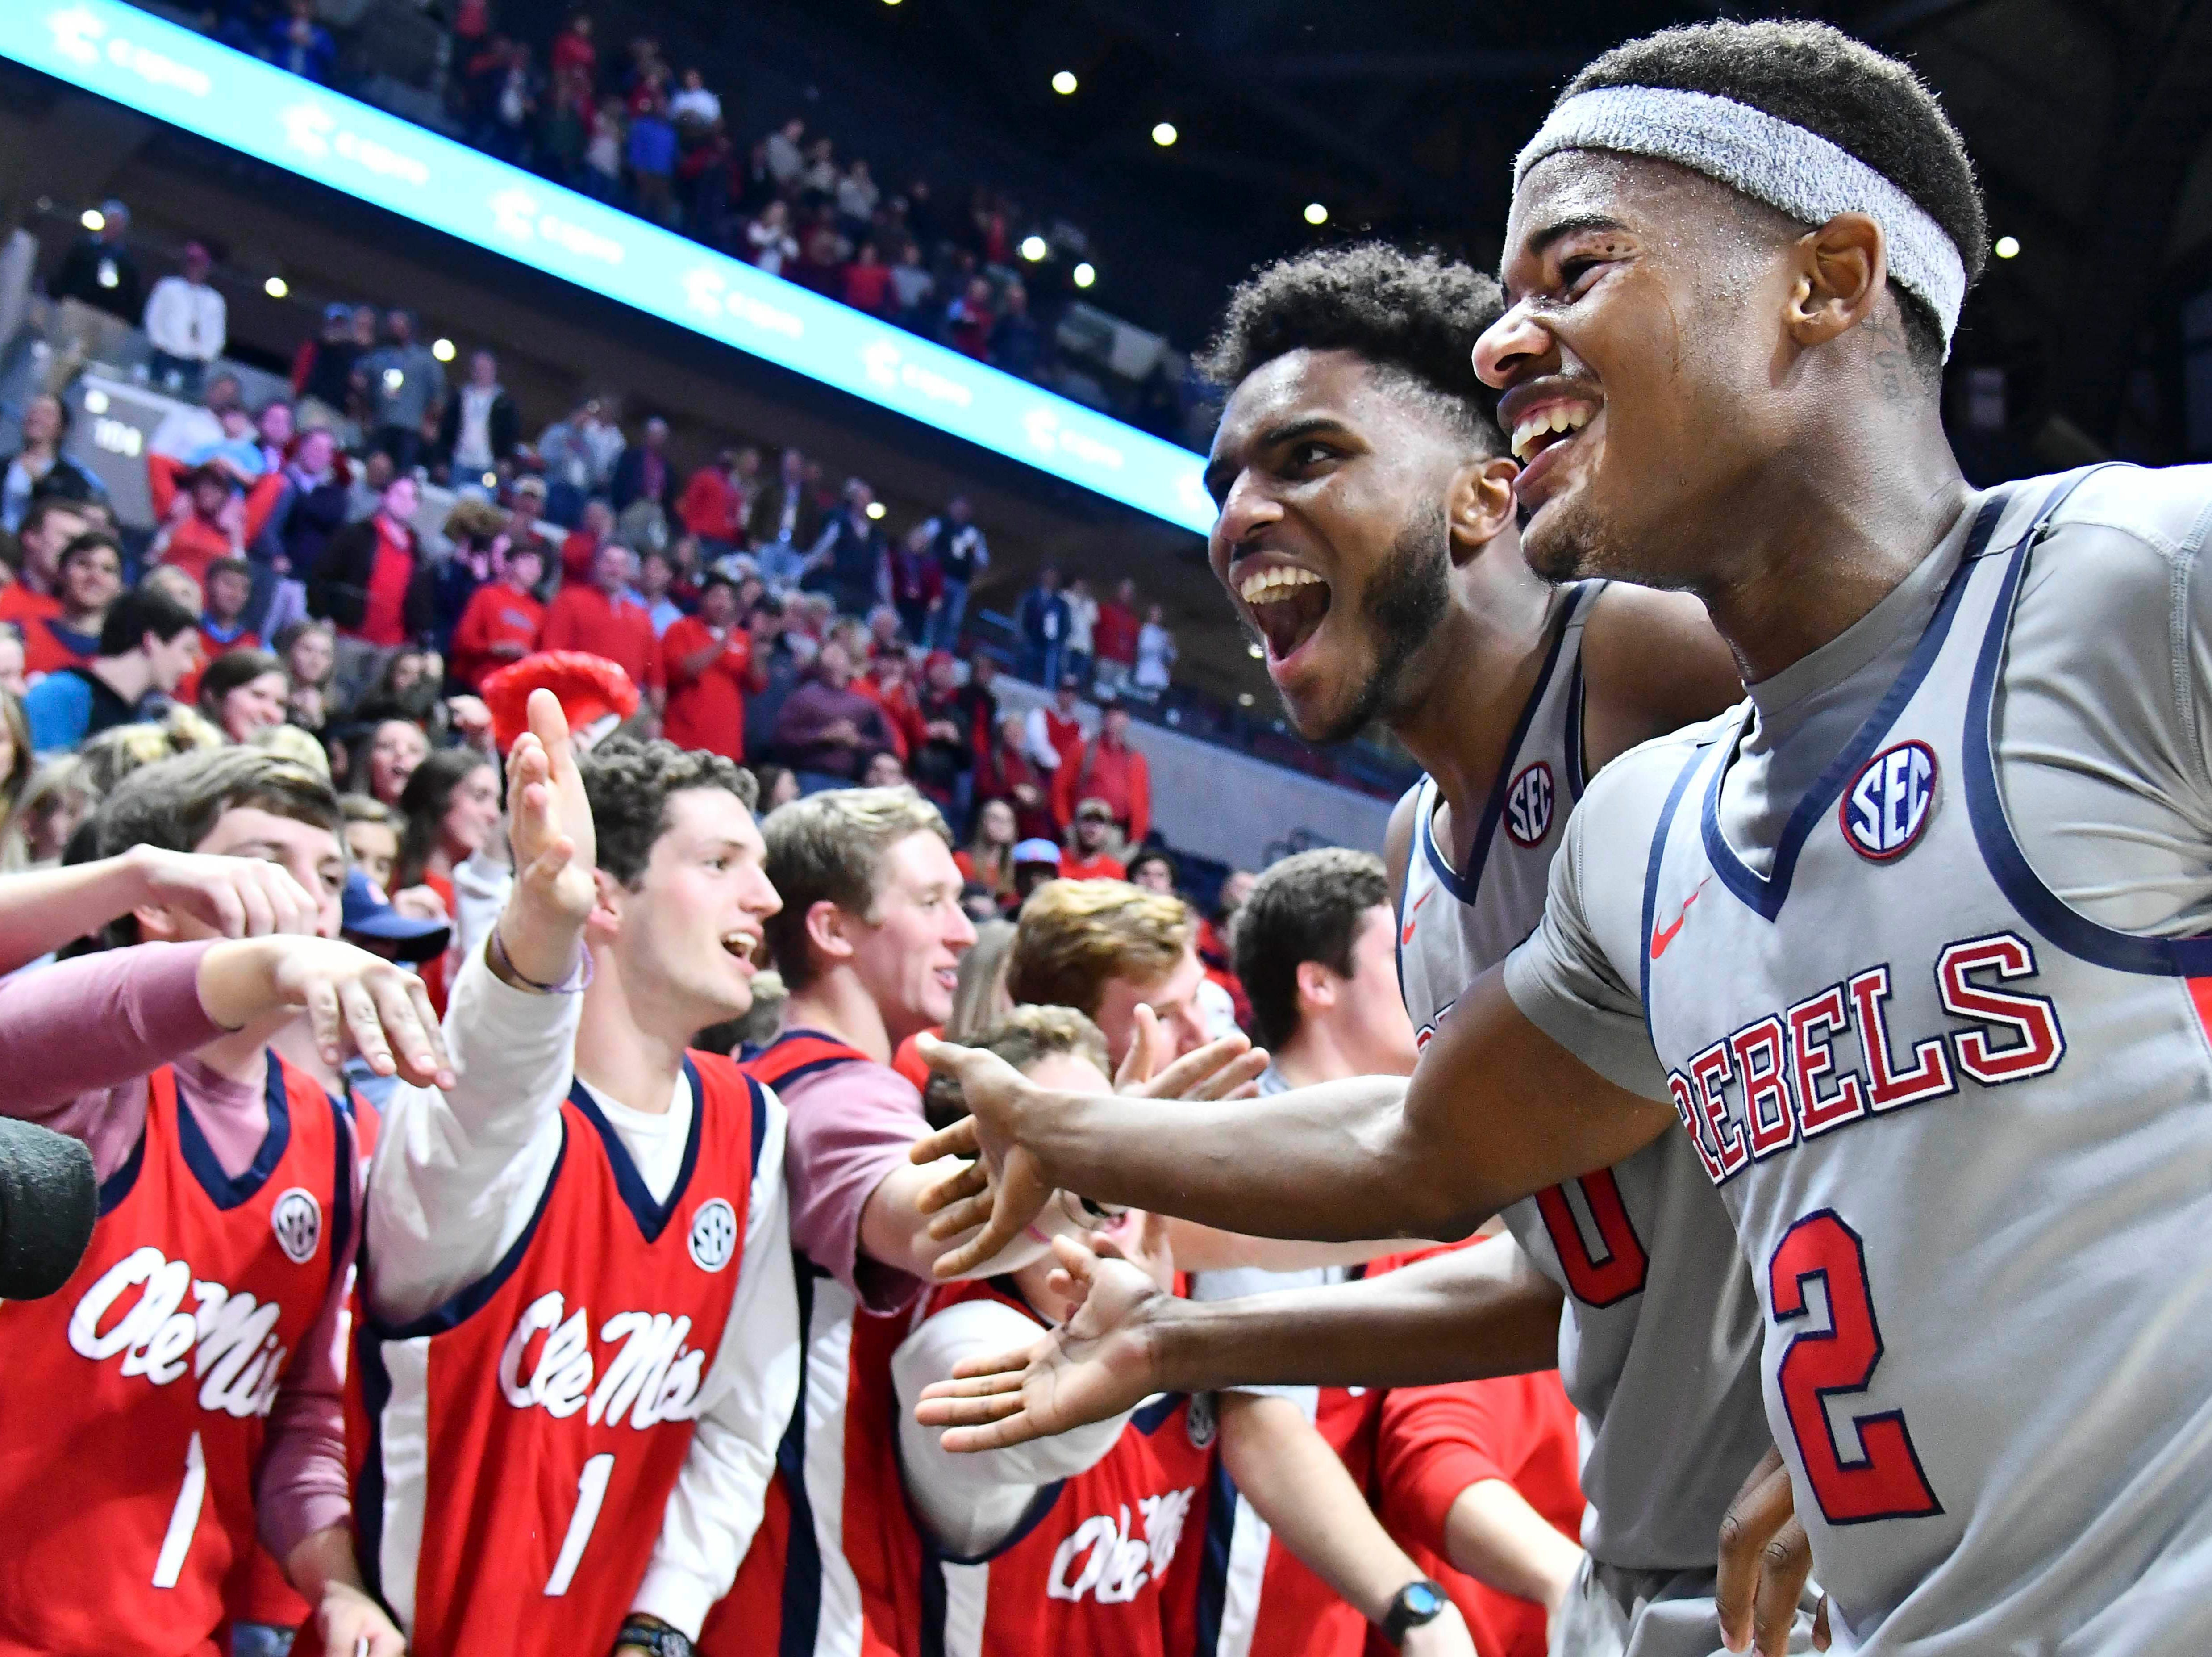 Jan 9, 2019; Oxford, MS, USA; Mississippi Rebels guard Blake Hinson (0) and guard Devontae Shuler (2) react after the game against the Auburn Tigers at The Pavilion at Ole Miss. Mandatory Credit: Matt Bush-USA TODAY Sports